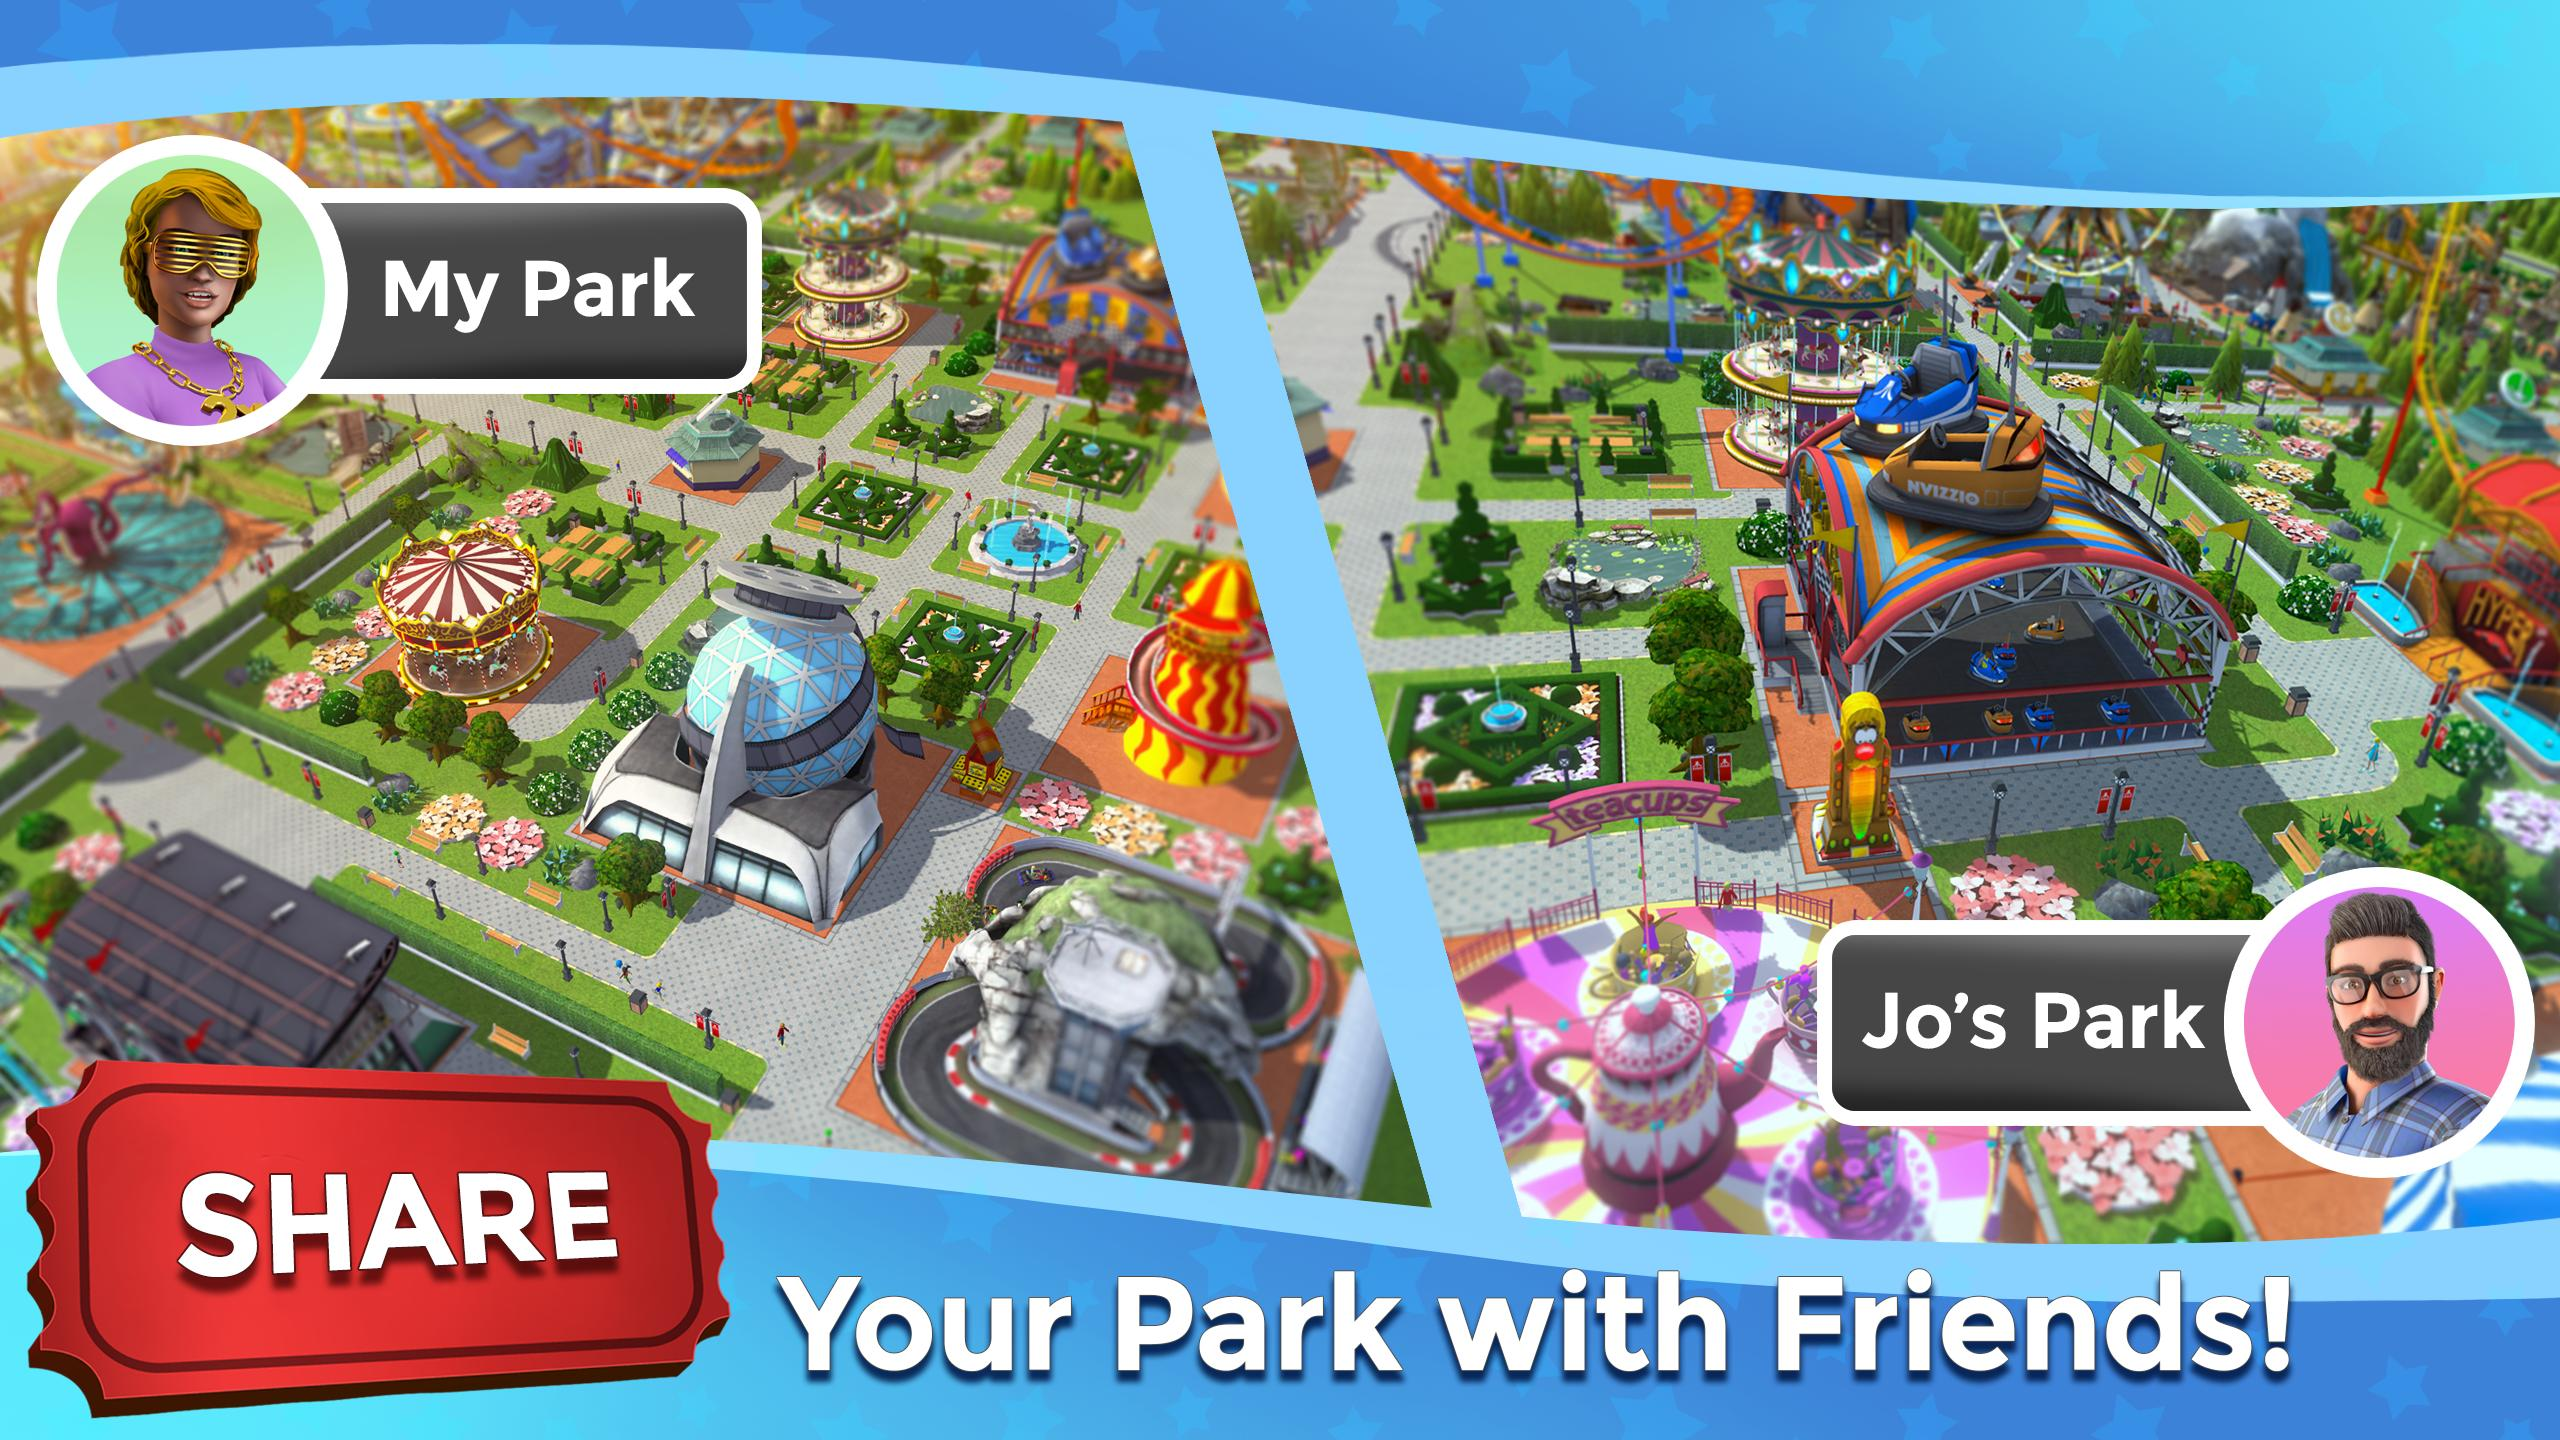 RollerCoaster Tycoon Touch - Build your Theme Park 3.5.0 Screenshot 23